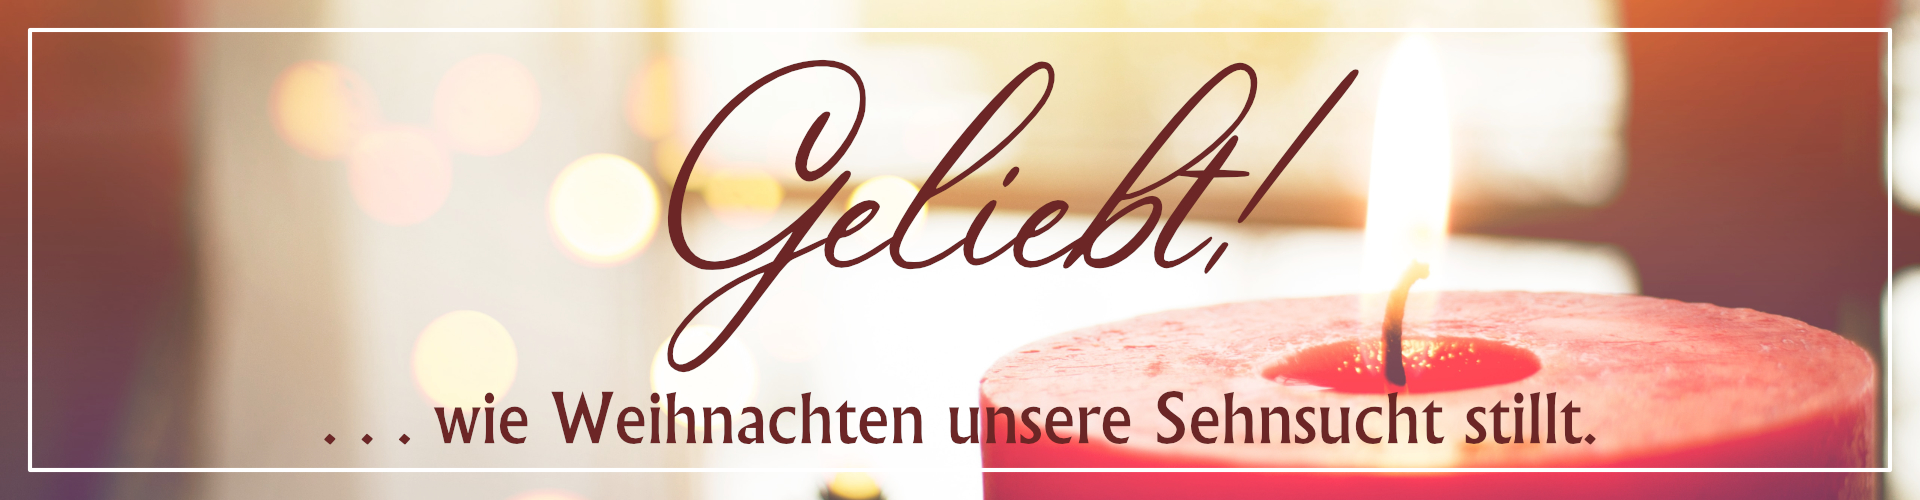 Adventssingen Slider 1920×500